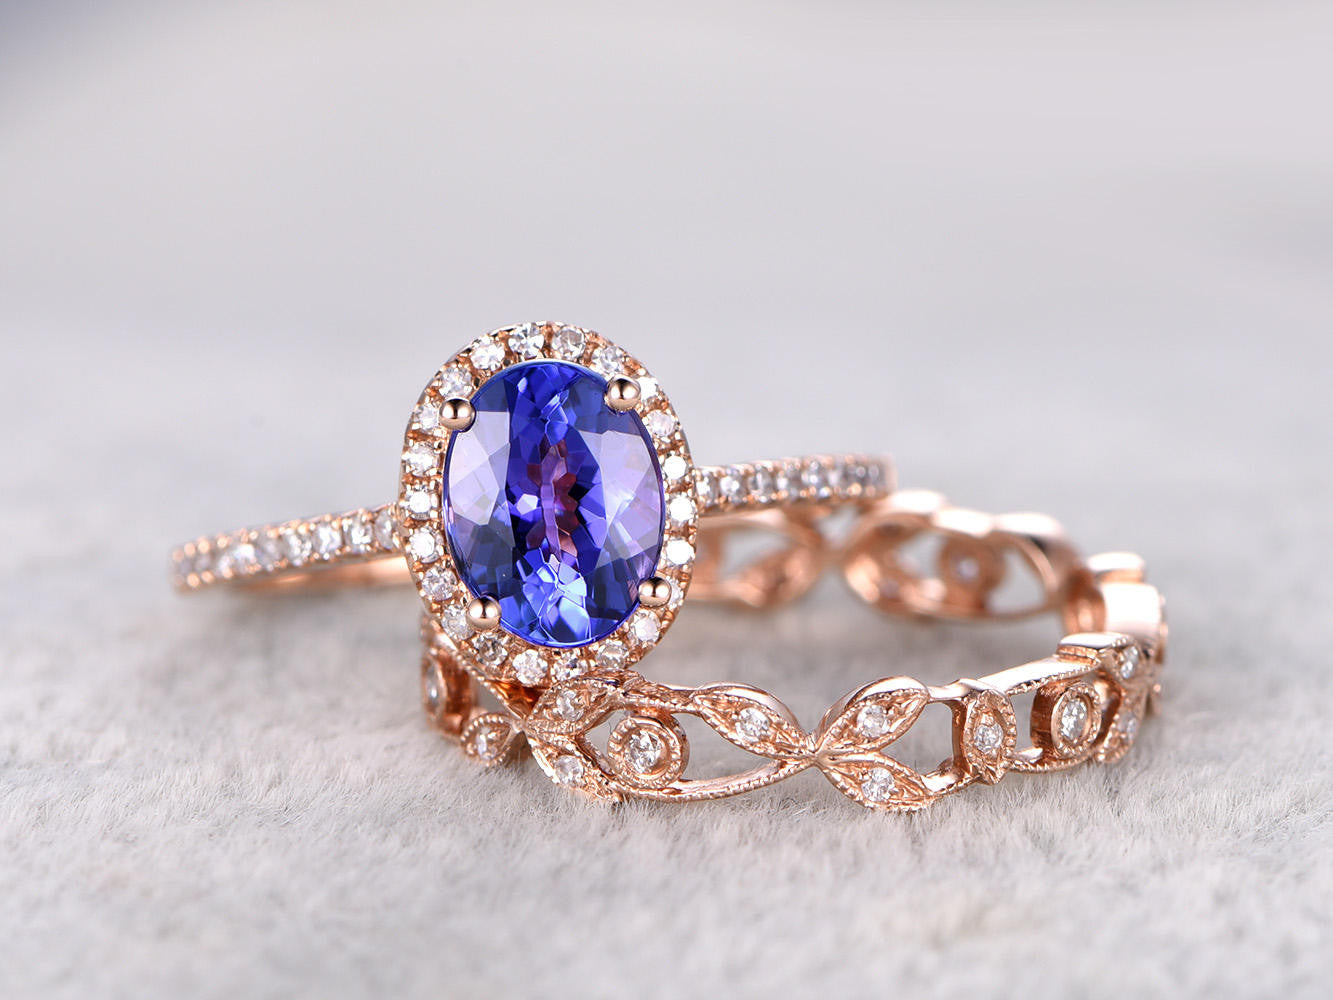 6x8mm Oval Tanzanite Wedding ring set,Engagement ring Rose gold,Vintage Floral Wedding band,14K,Halo Bridal Ring,Blue Gemstone ring,Milgrain